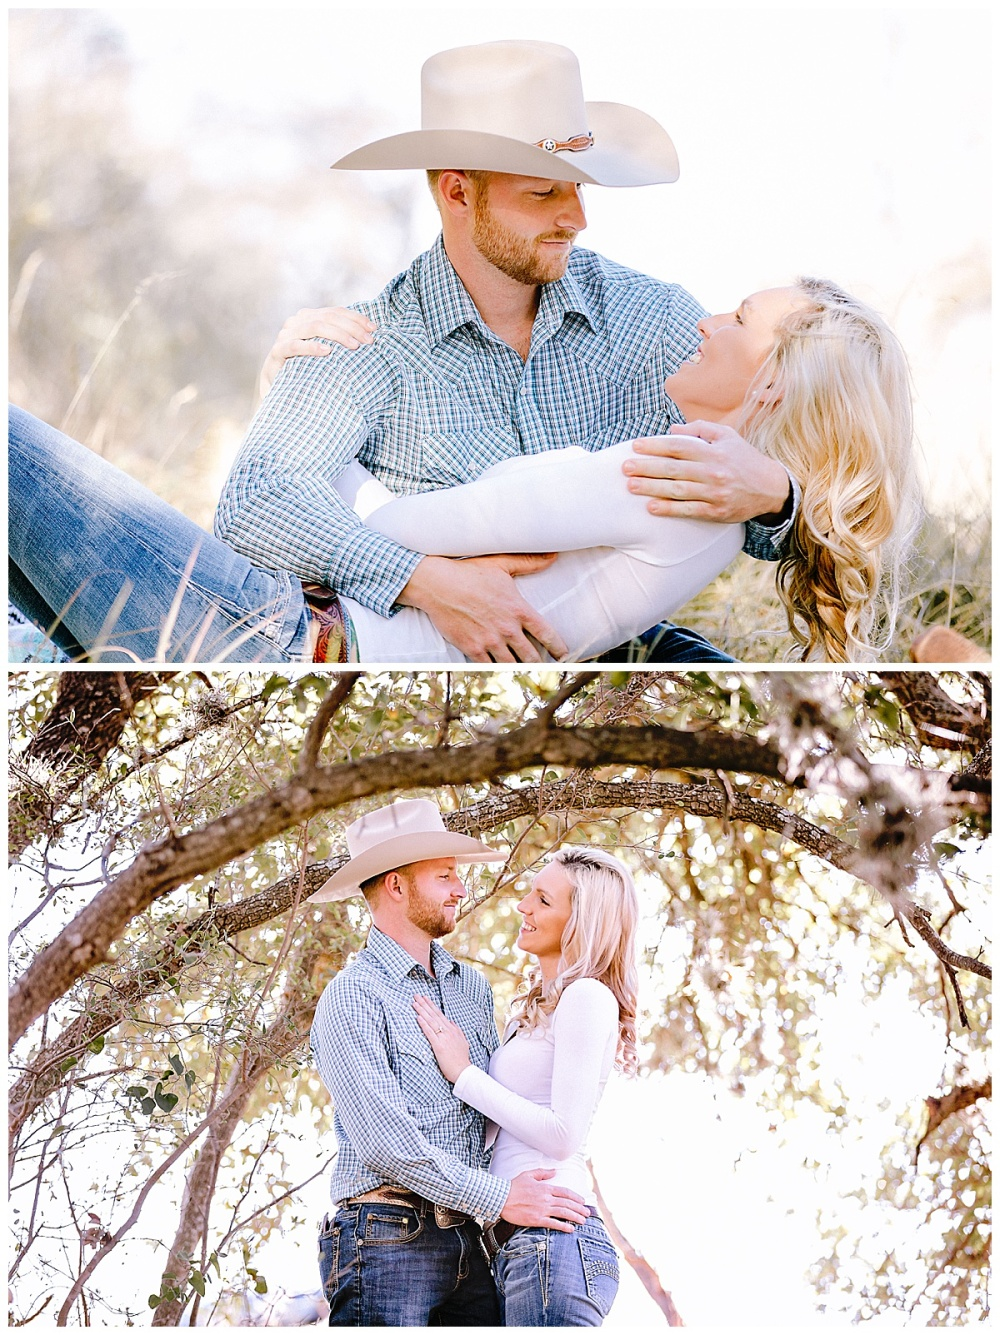 South-Texas-Wedding-Photographer-Engagement-Photos-Enchanted-Rock-Fredericksburg-Sunset-Couples-Carly-Barton-Photography_0004.jpg